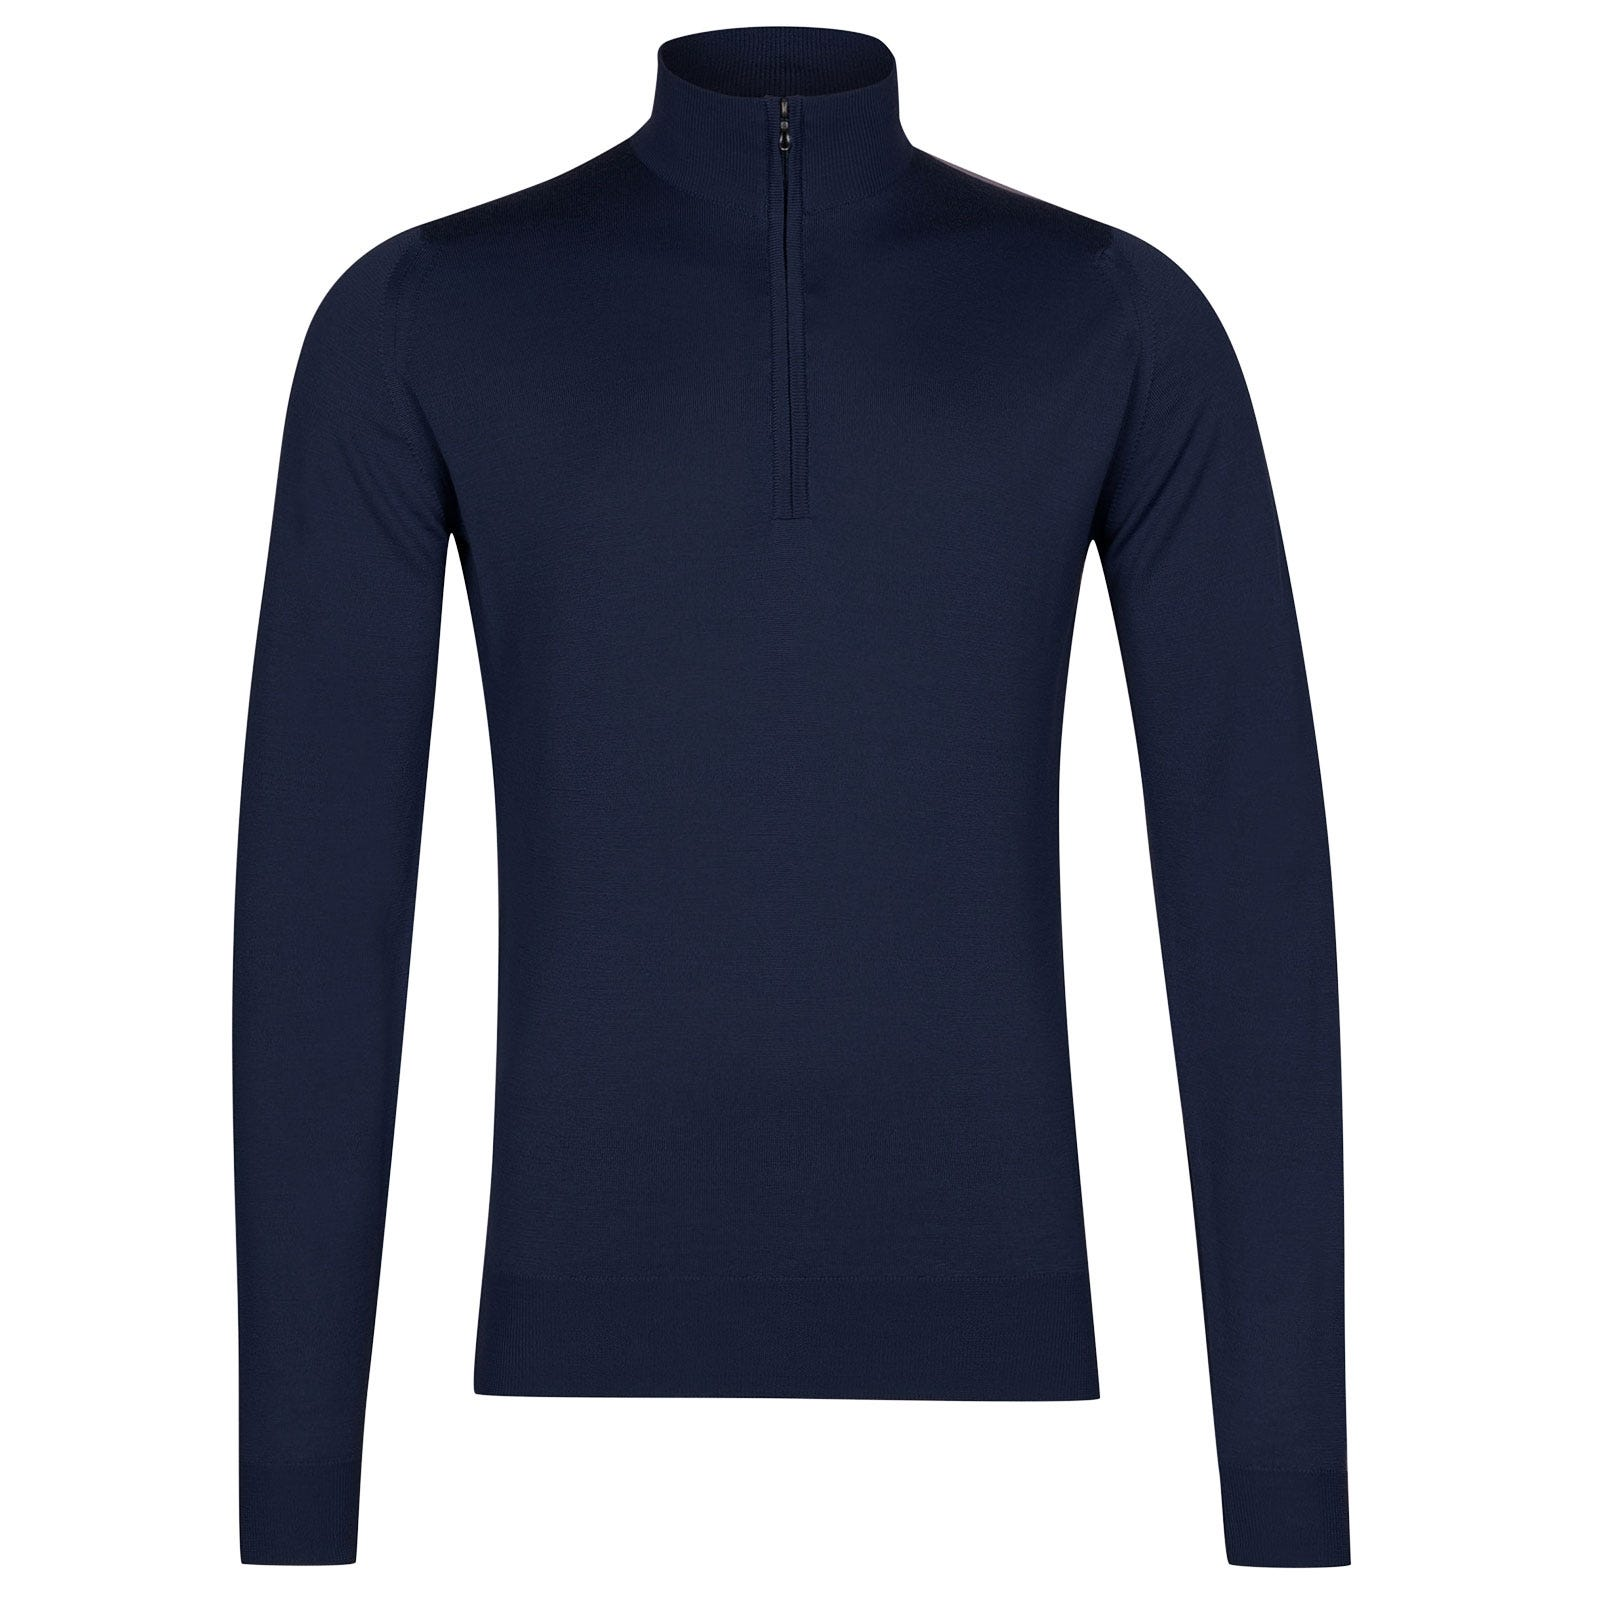 John Smedley Barrow Merino Wool Pullover in Magnetic Cobalt-L